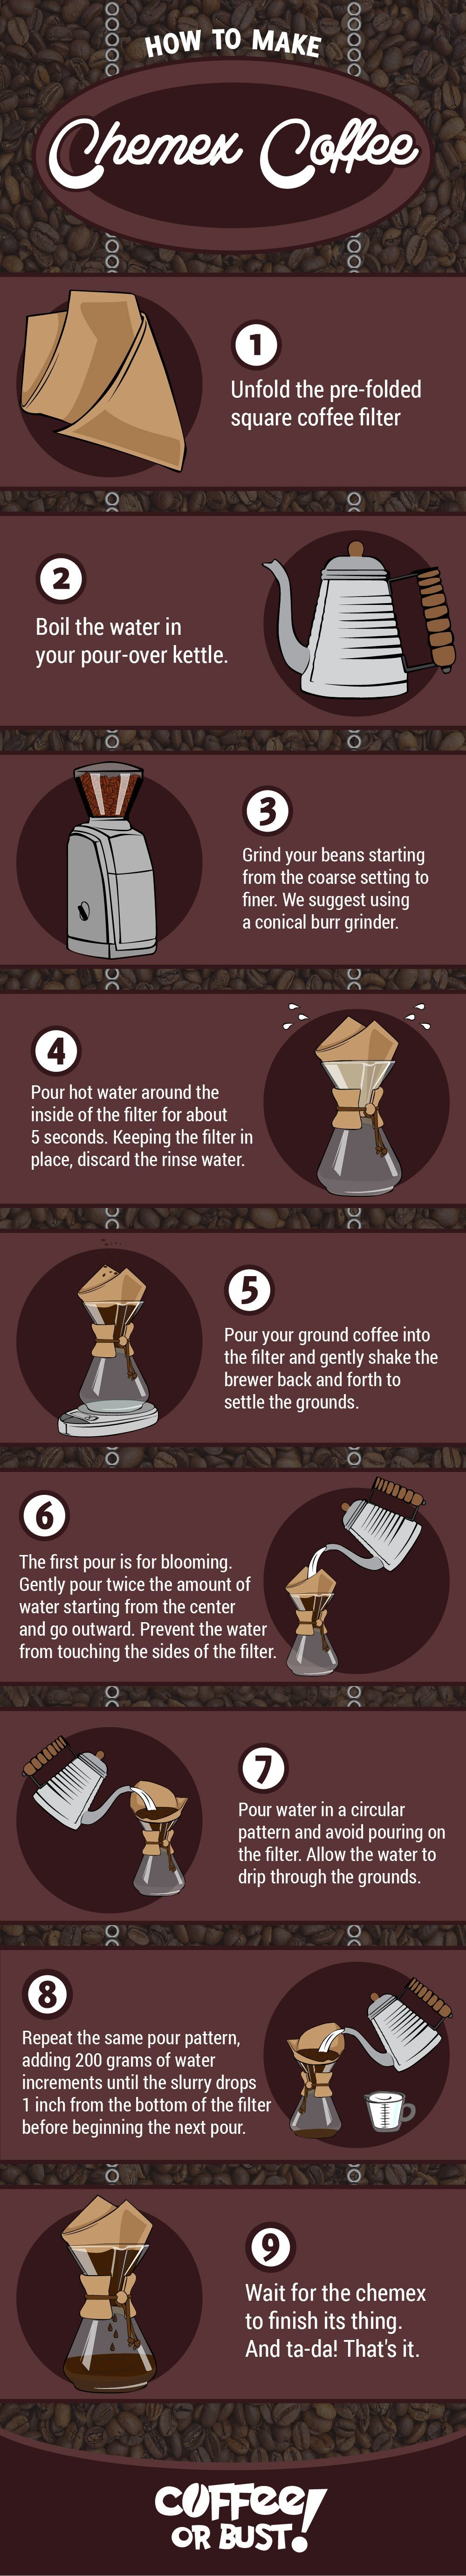 how-to-make-chemex-coffee